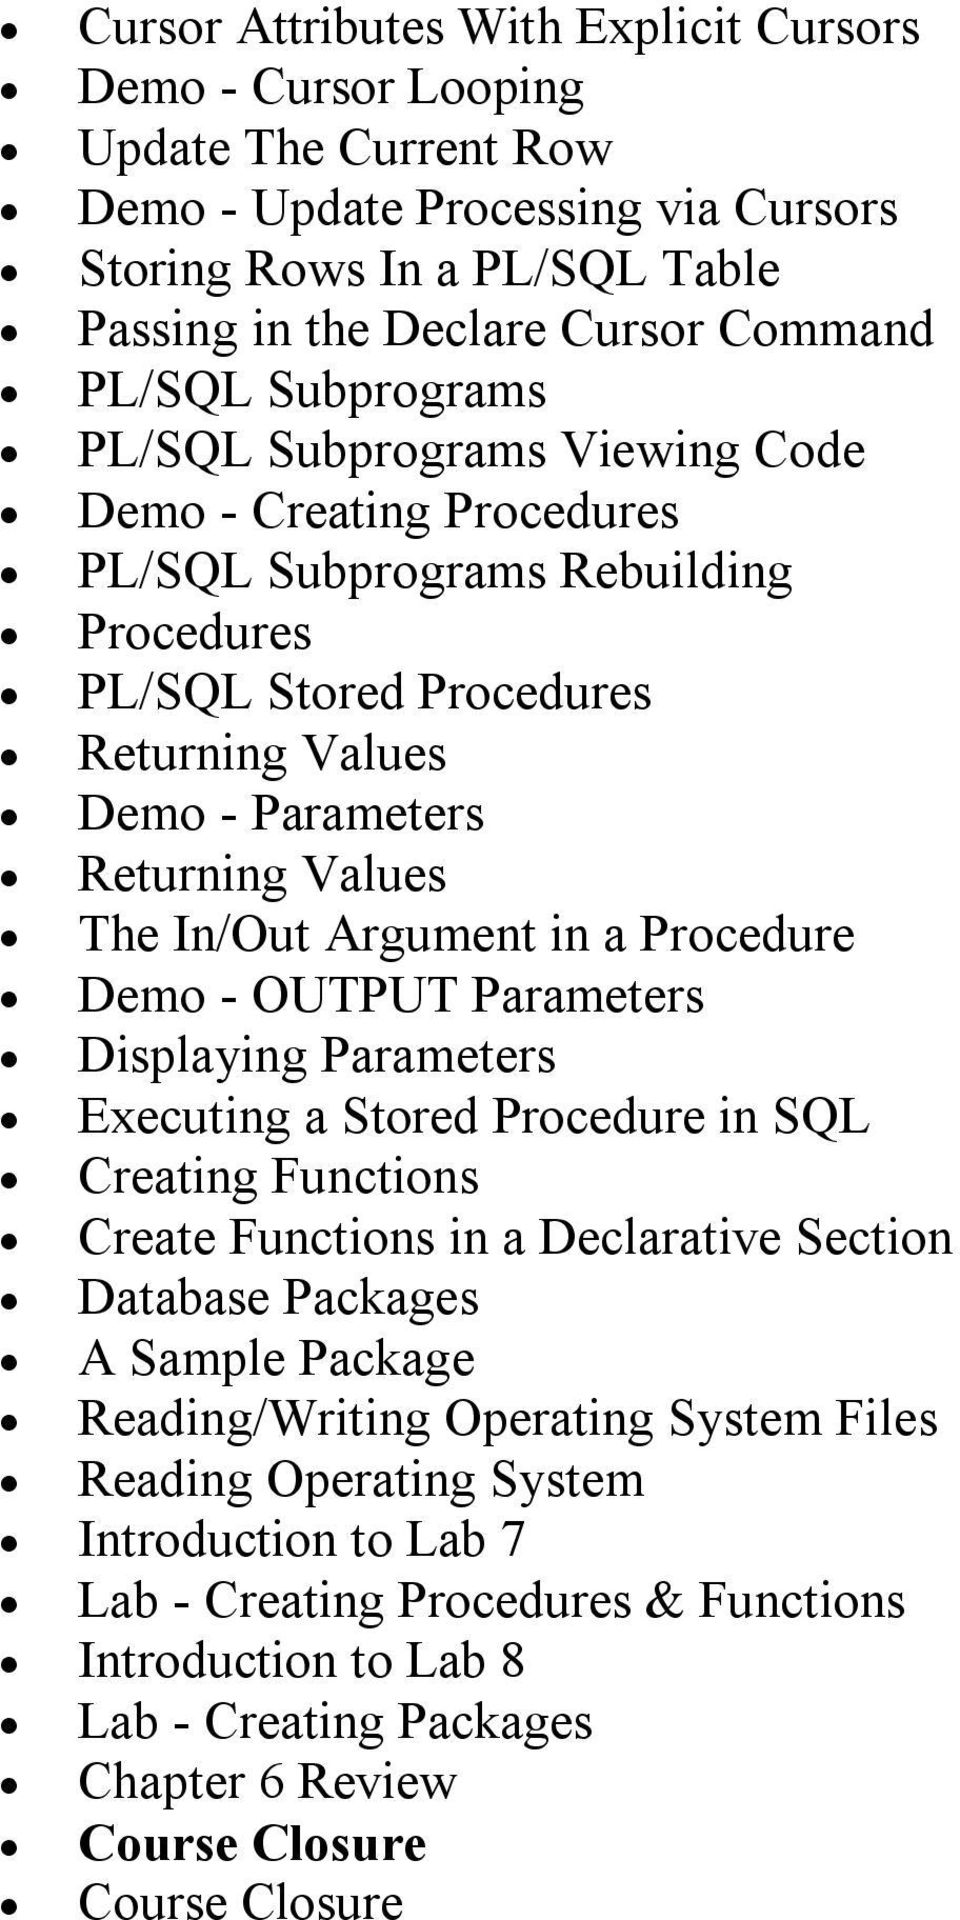 Argument in a Procedure Demo OUTPUT Parameters Displaying Parameters Executing a Stored Procedure in SQL Creating Functions Create Functions in a Declarative Section Database Packages A Sample